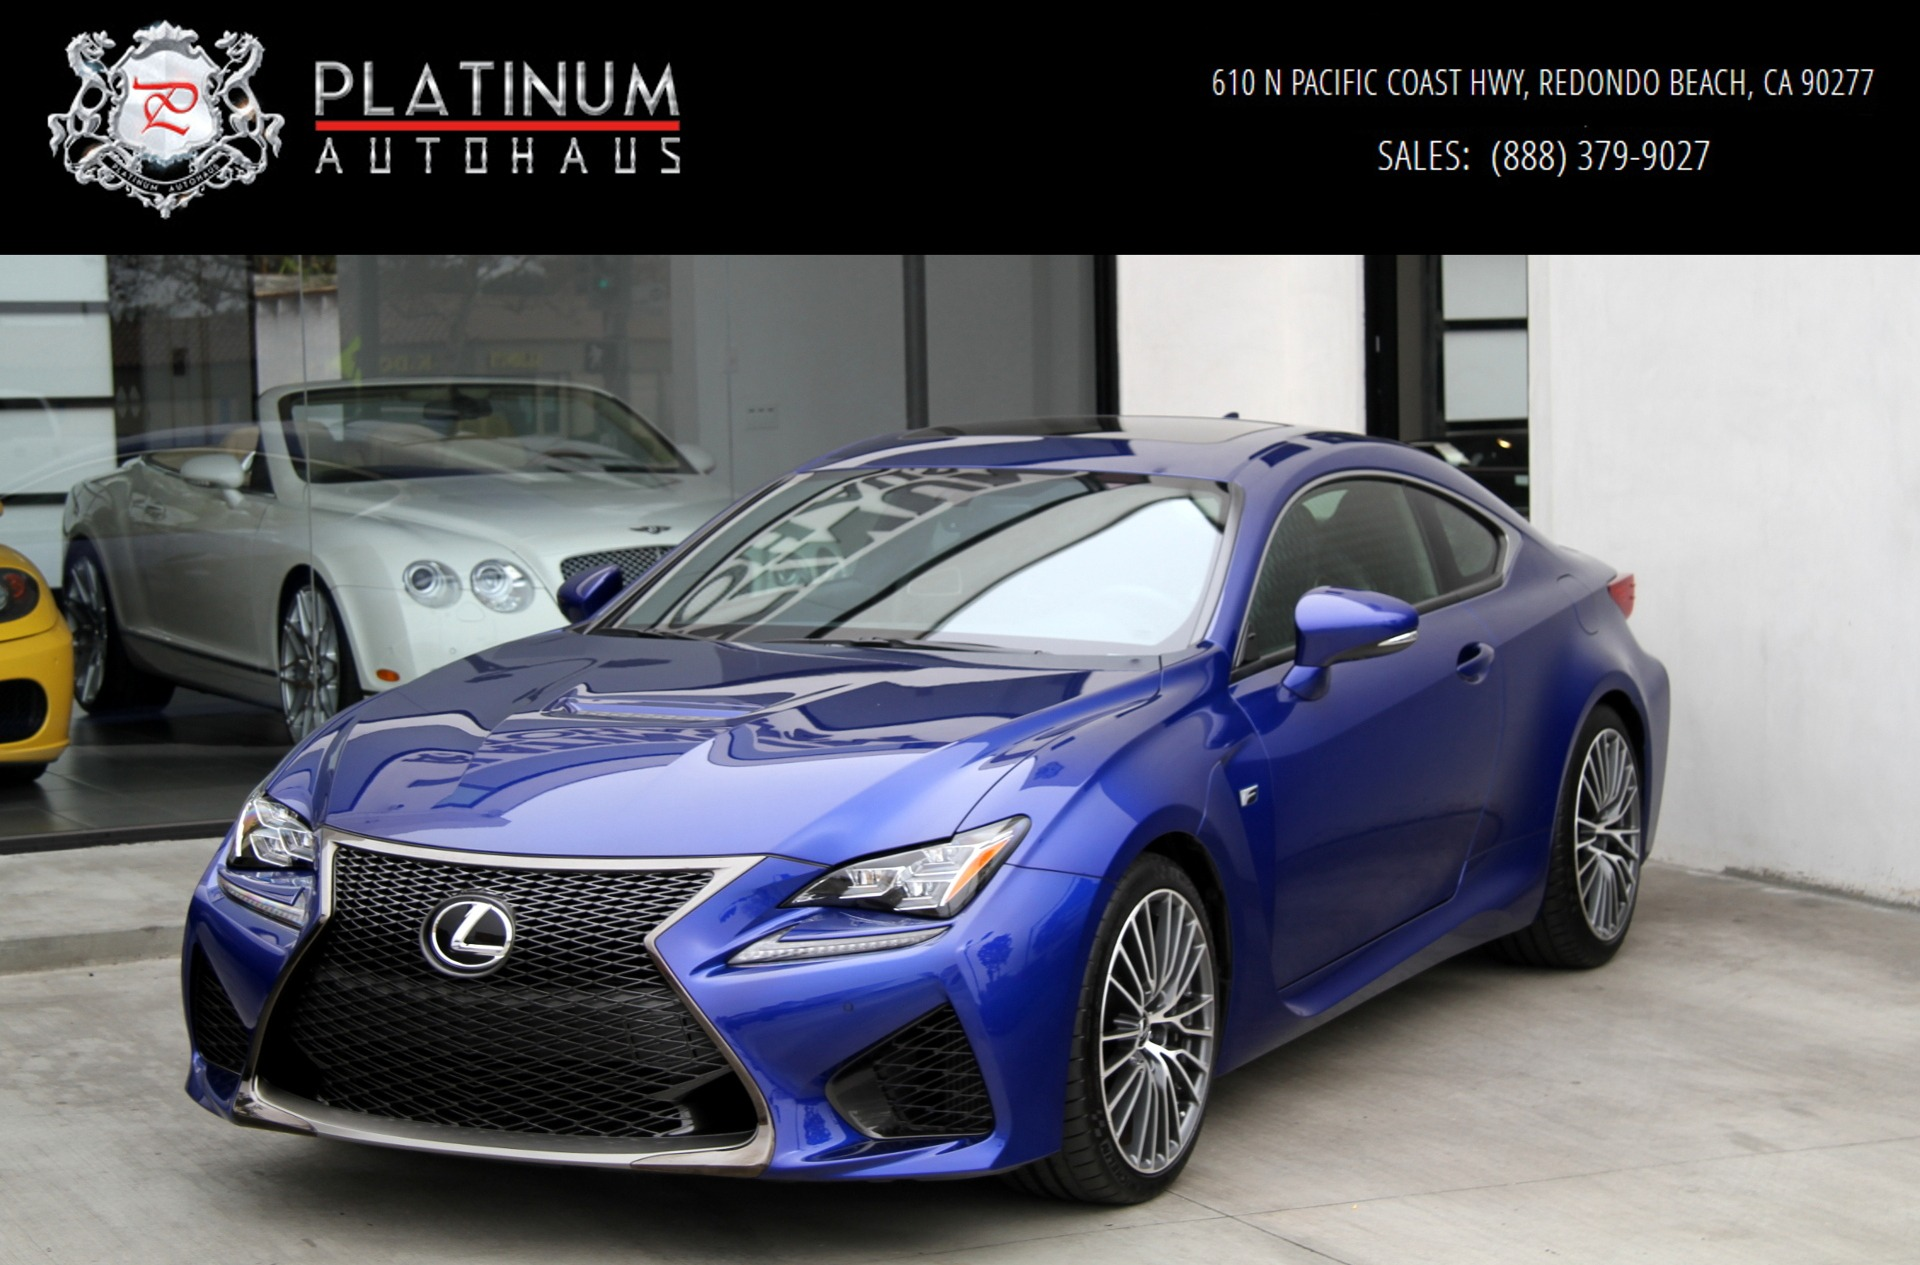 https://www.platinumautohaus.com/imagetag/12654/main/l/Used-2015-Lexus-RC-F--***-ONLY-1,100-MILES-***.jpg